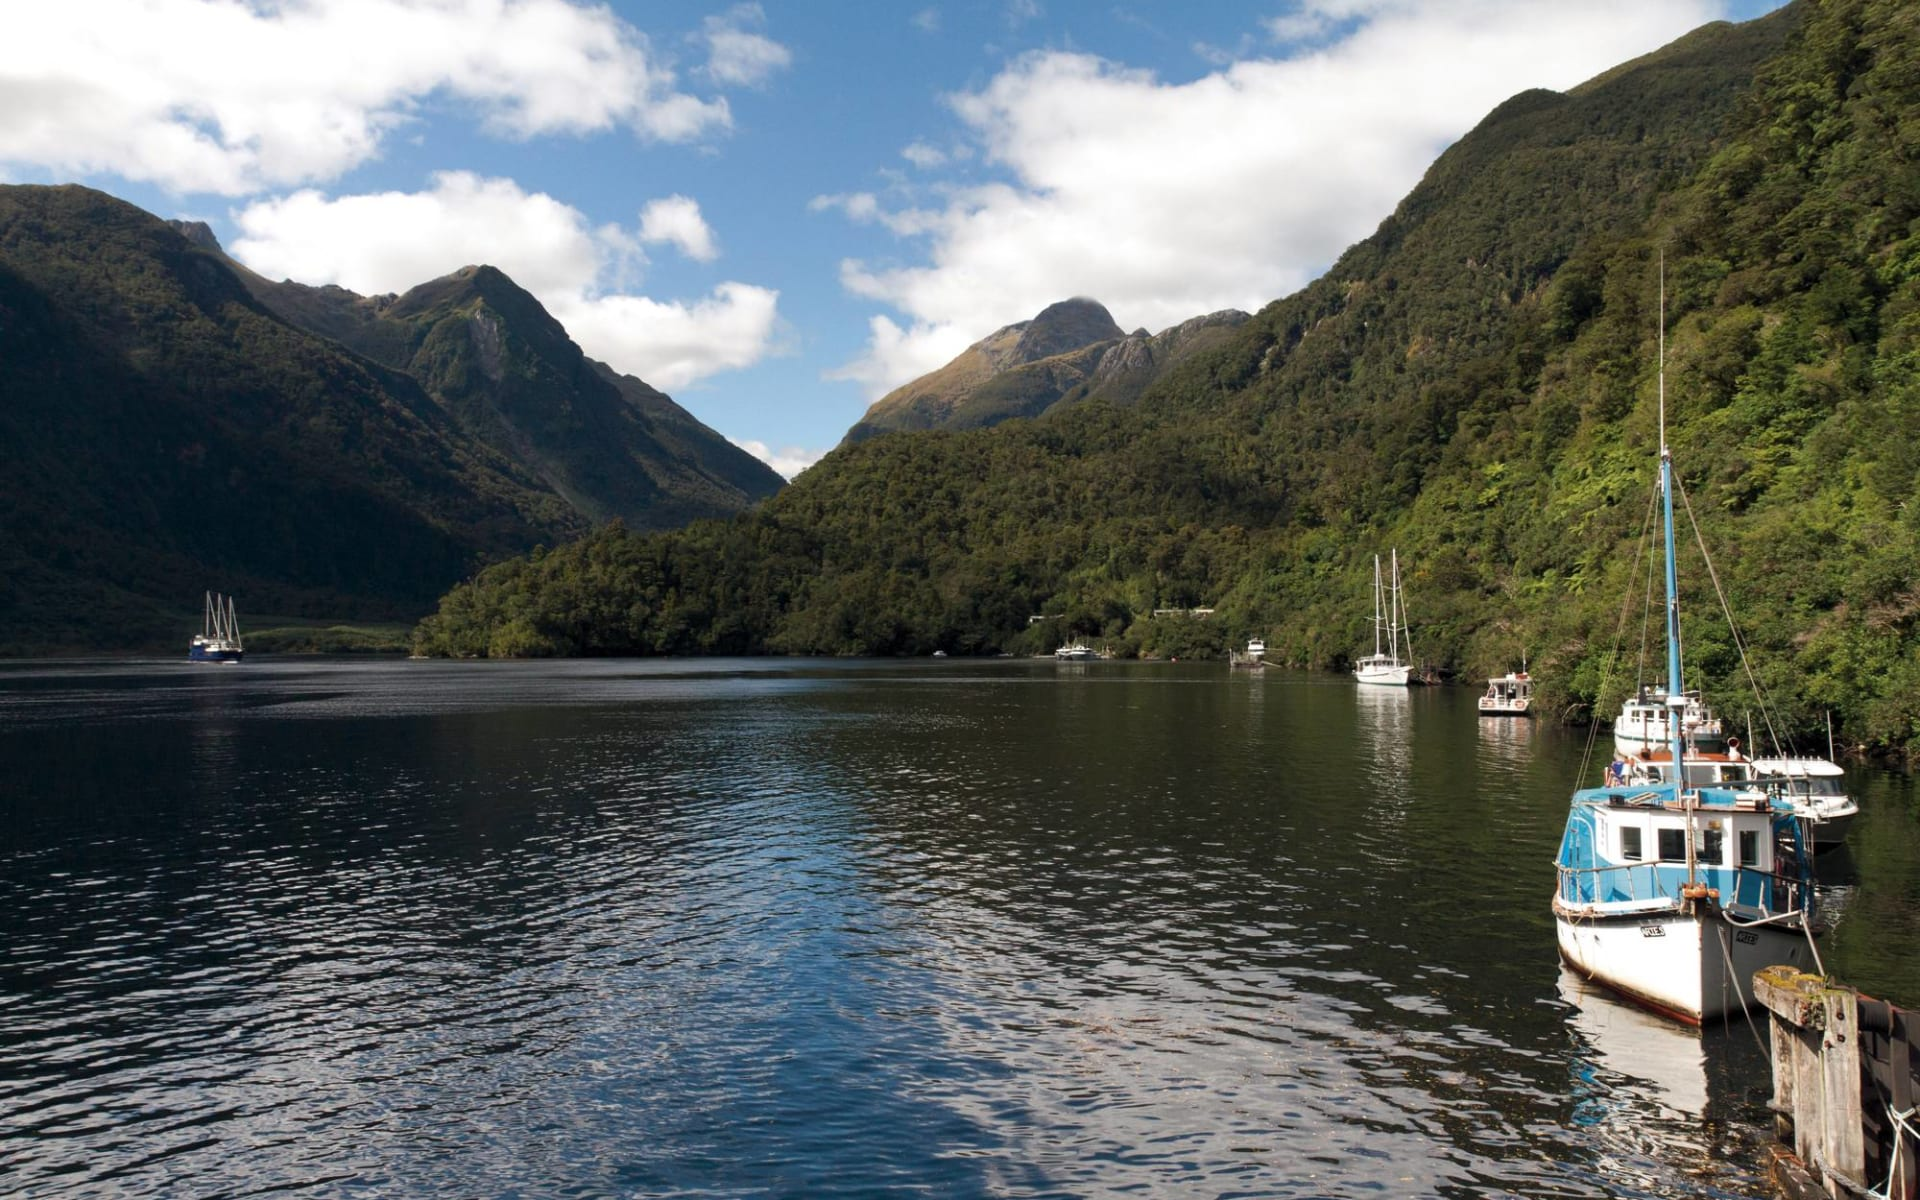 Doubtful Sound Overnight Cruise ab Queenstown: Neuseeland - Südinsel - Doubtful Sound